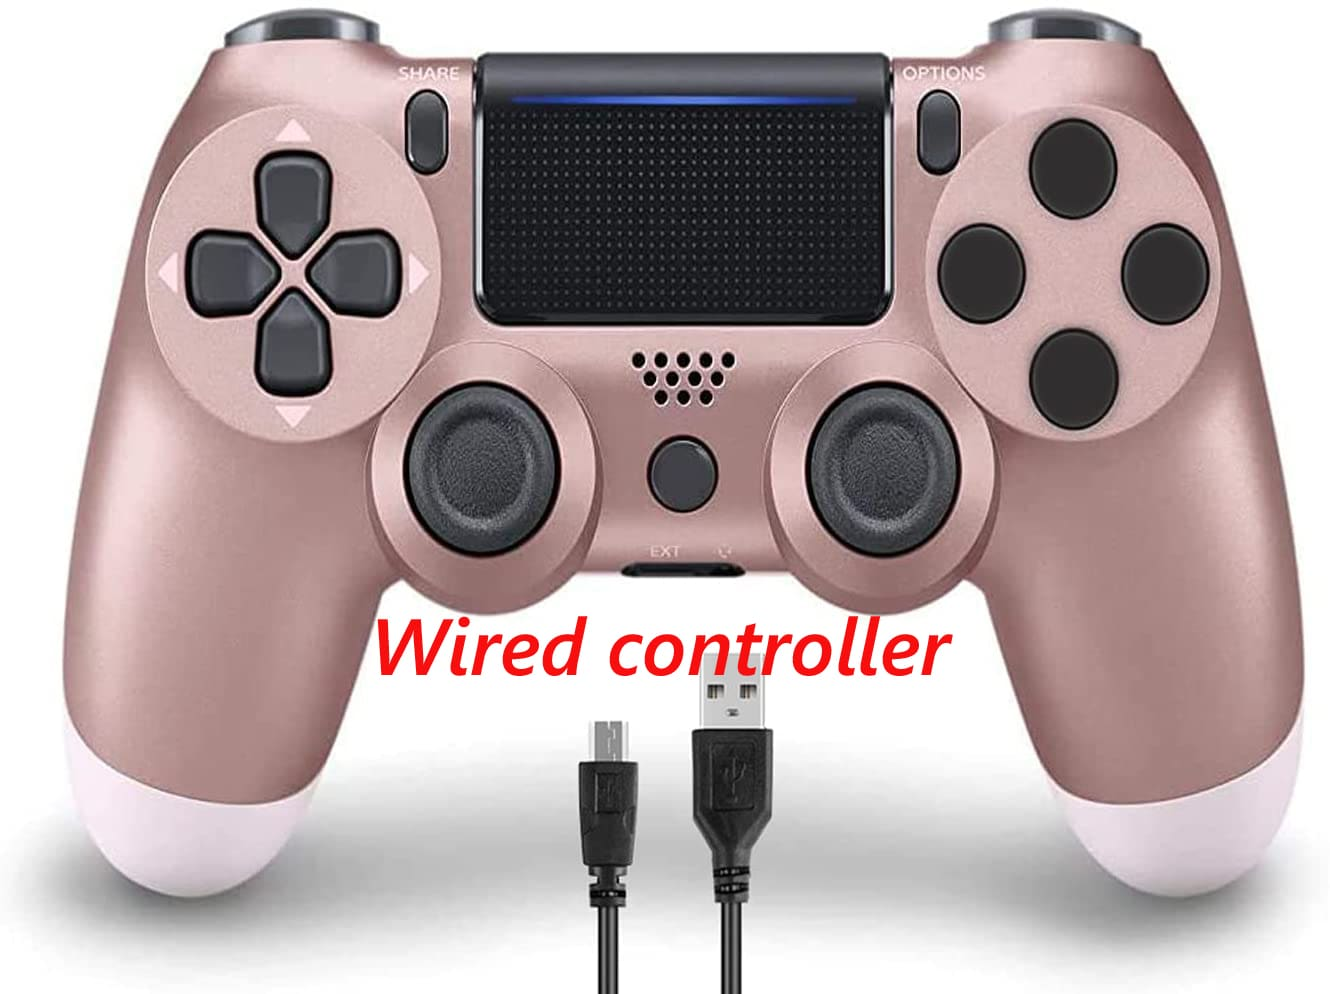 PS4 Wired Controller Dual Shock 4 Gamepad For Sony Playstation 4 Rose Gold - 1